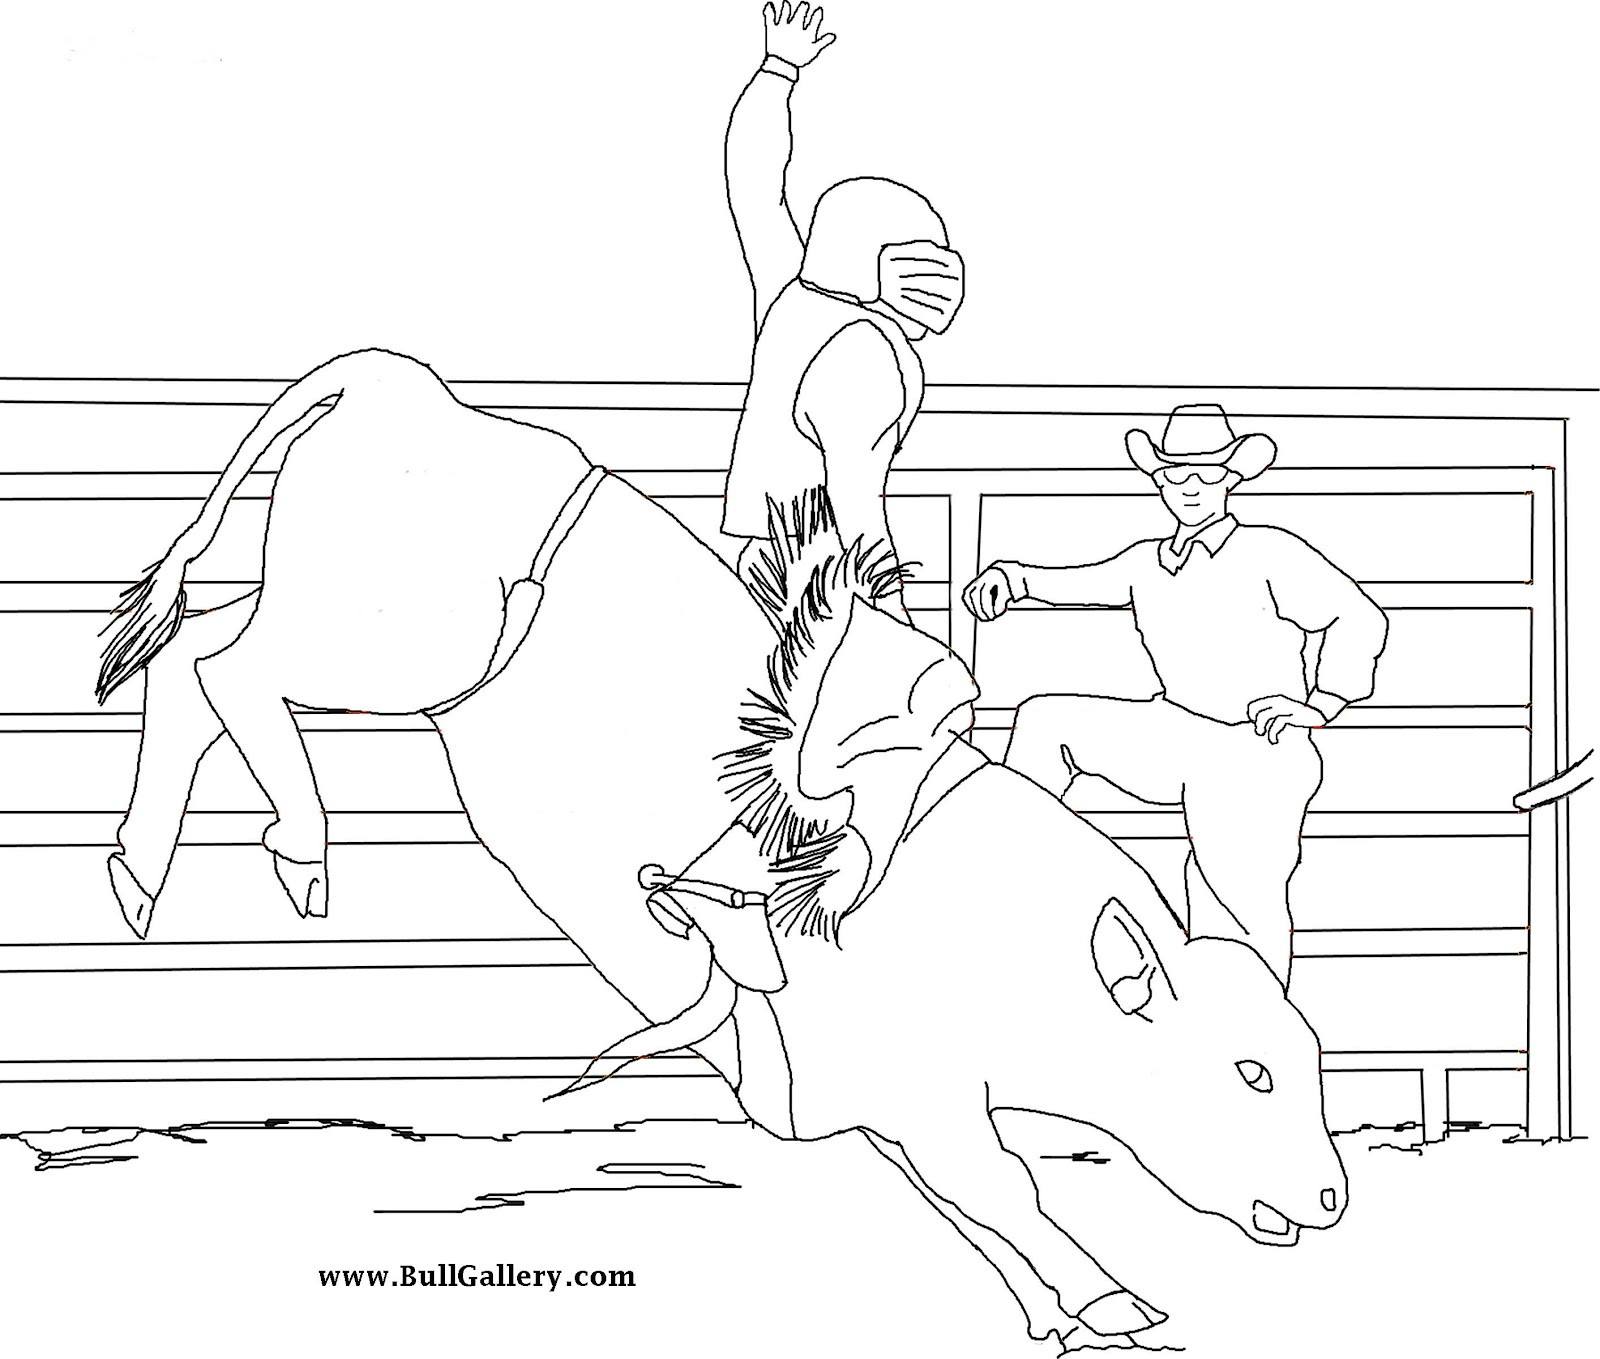 Bull Riding Coloring Pages  Bull To Color Free Bull Gallery